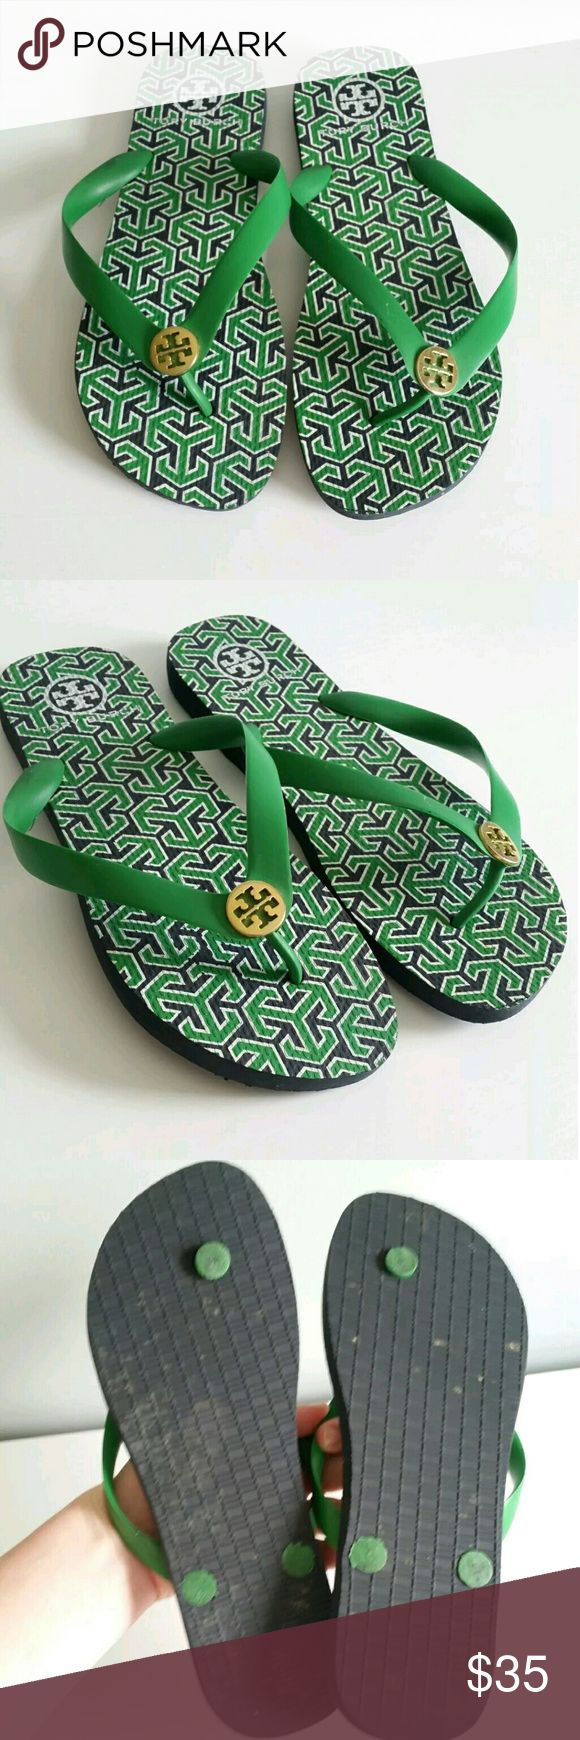 Tory Burch Women's Green Flip Flop Sandals 8.5 Gently used with light wear to the soles. From a smoke-free home   ** Size is unmarked. I believe they fit like an 8.5. Please view photo of sole measurement and compare it to a pair of sandals that fit you comfortably to ensure a proper fit. Thanks! Tory Burch Shoes Sandals